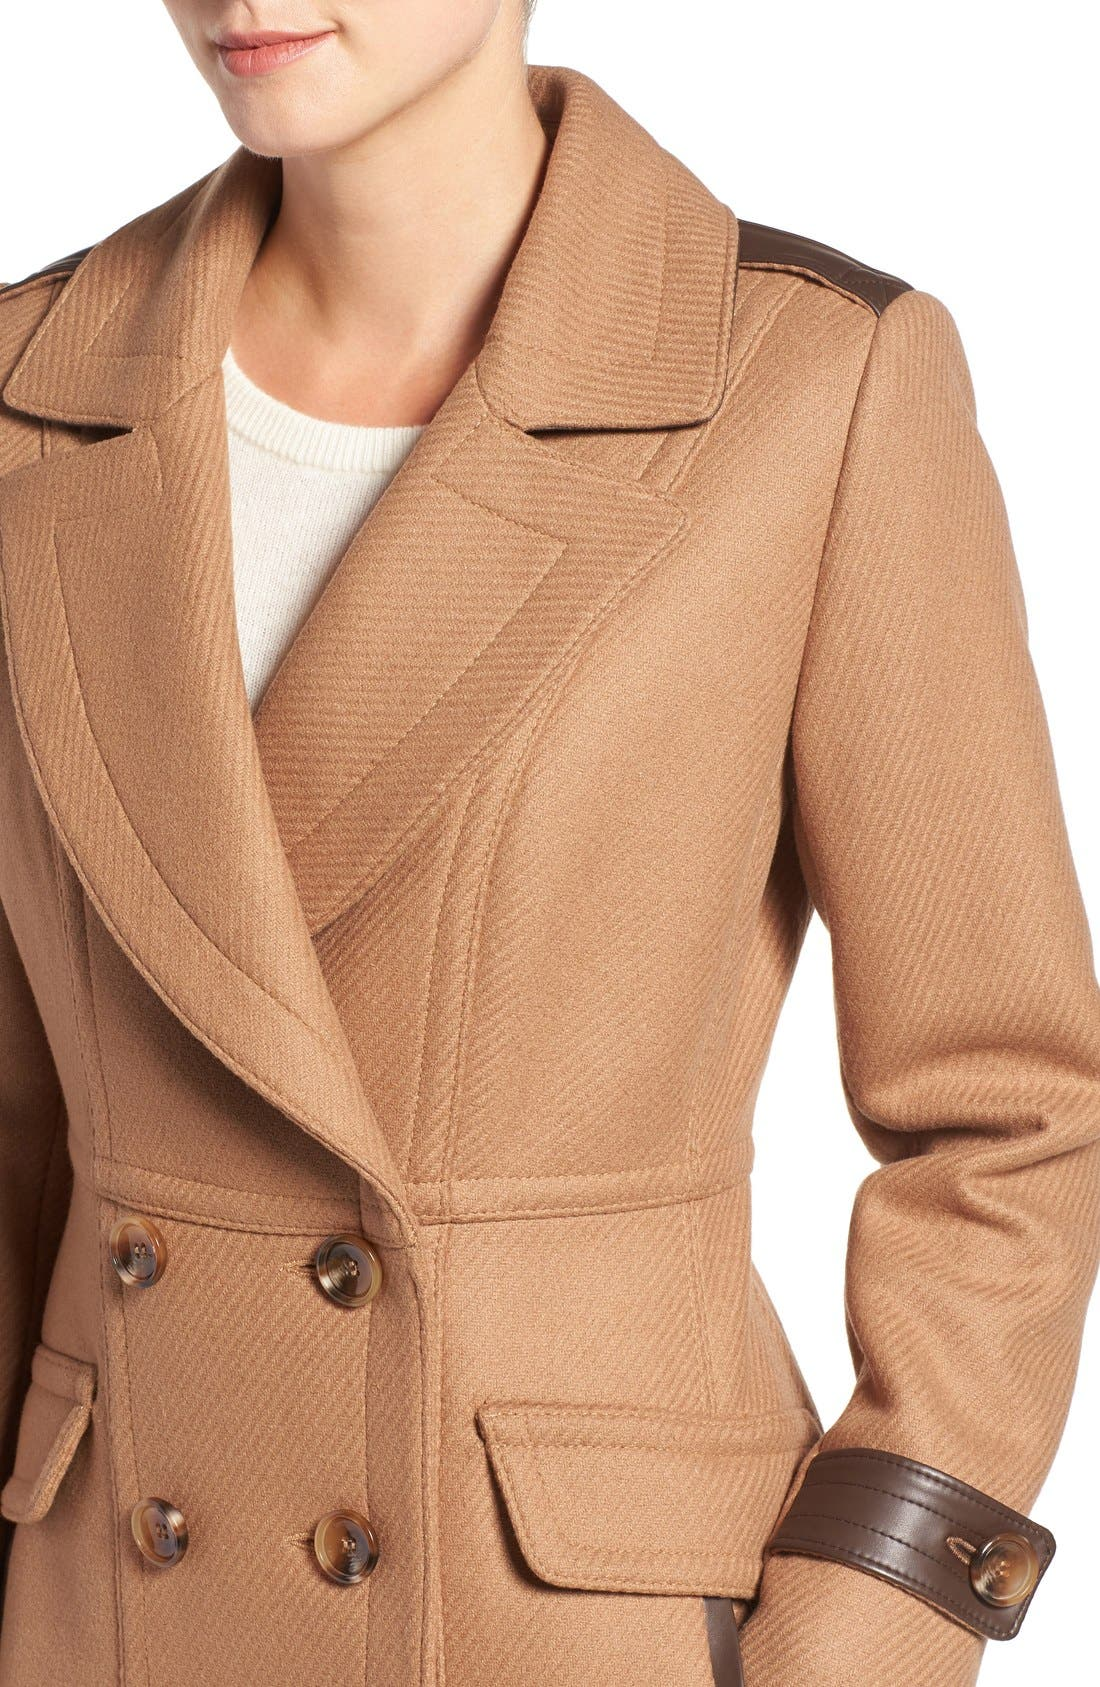 'Chloe' Wool Blend Peacoat,                             Alternate thumbnail 4, color,                             Camel